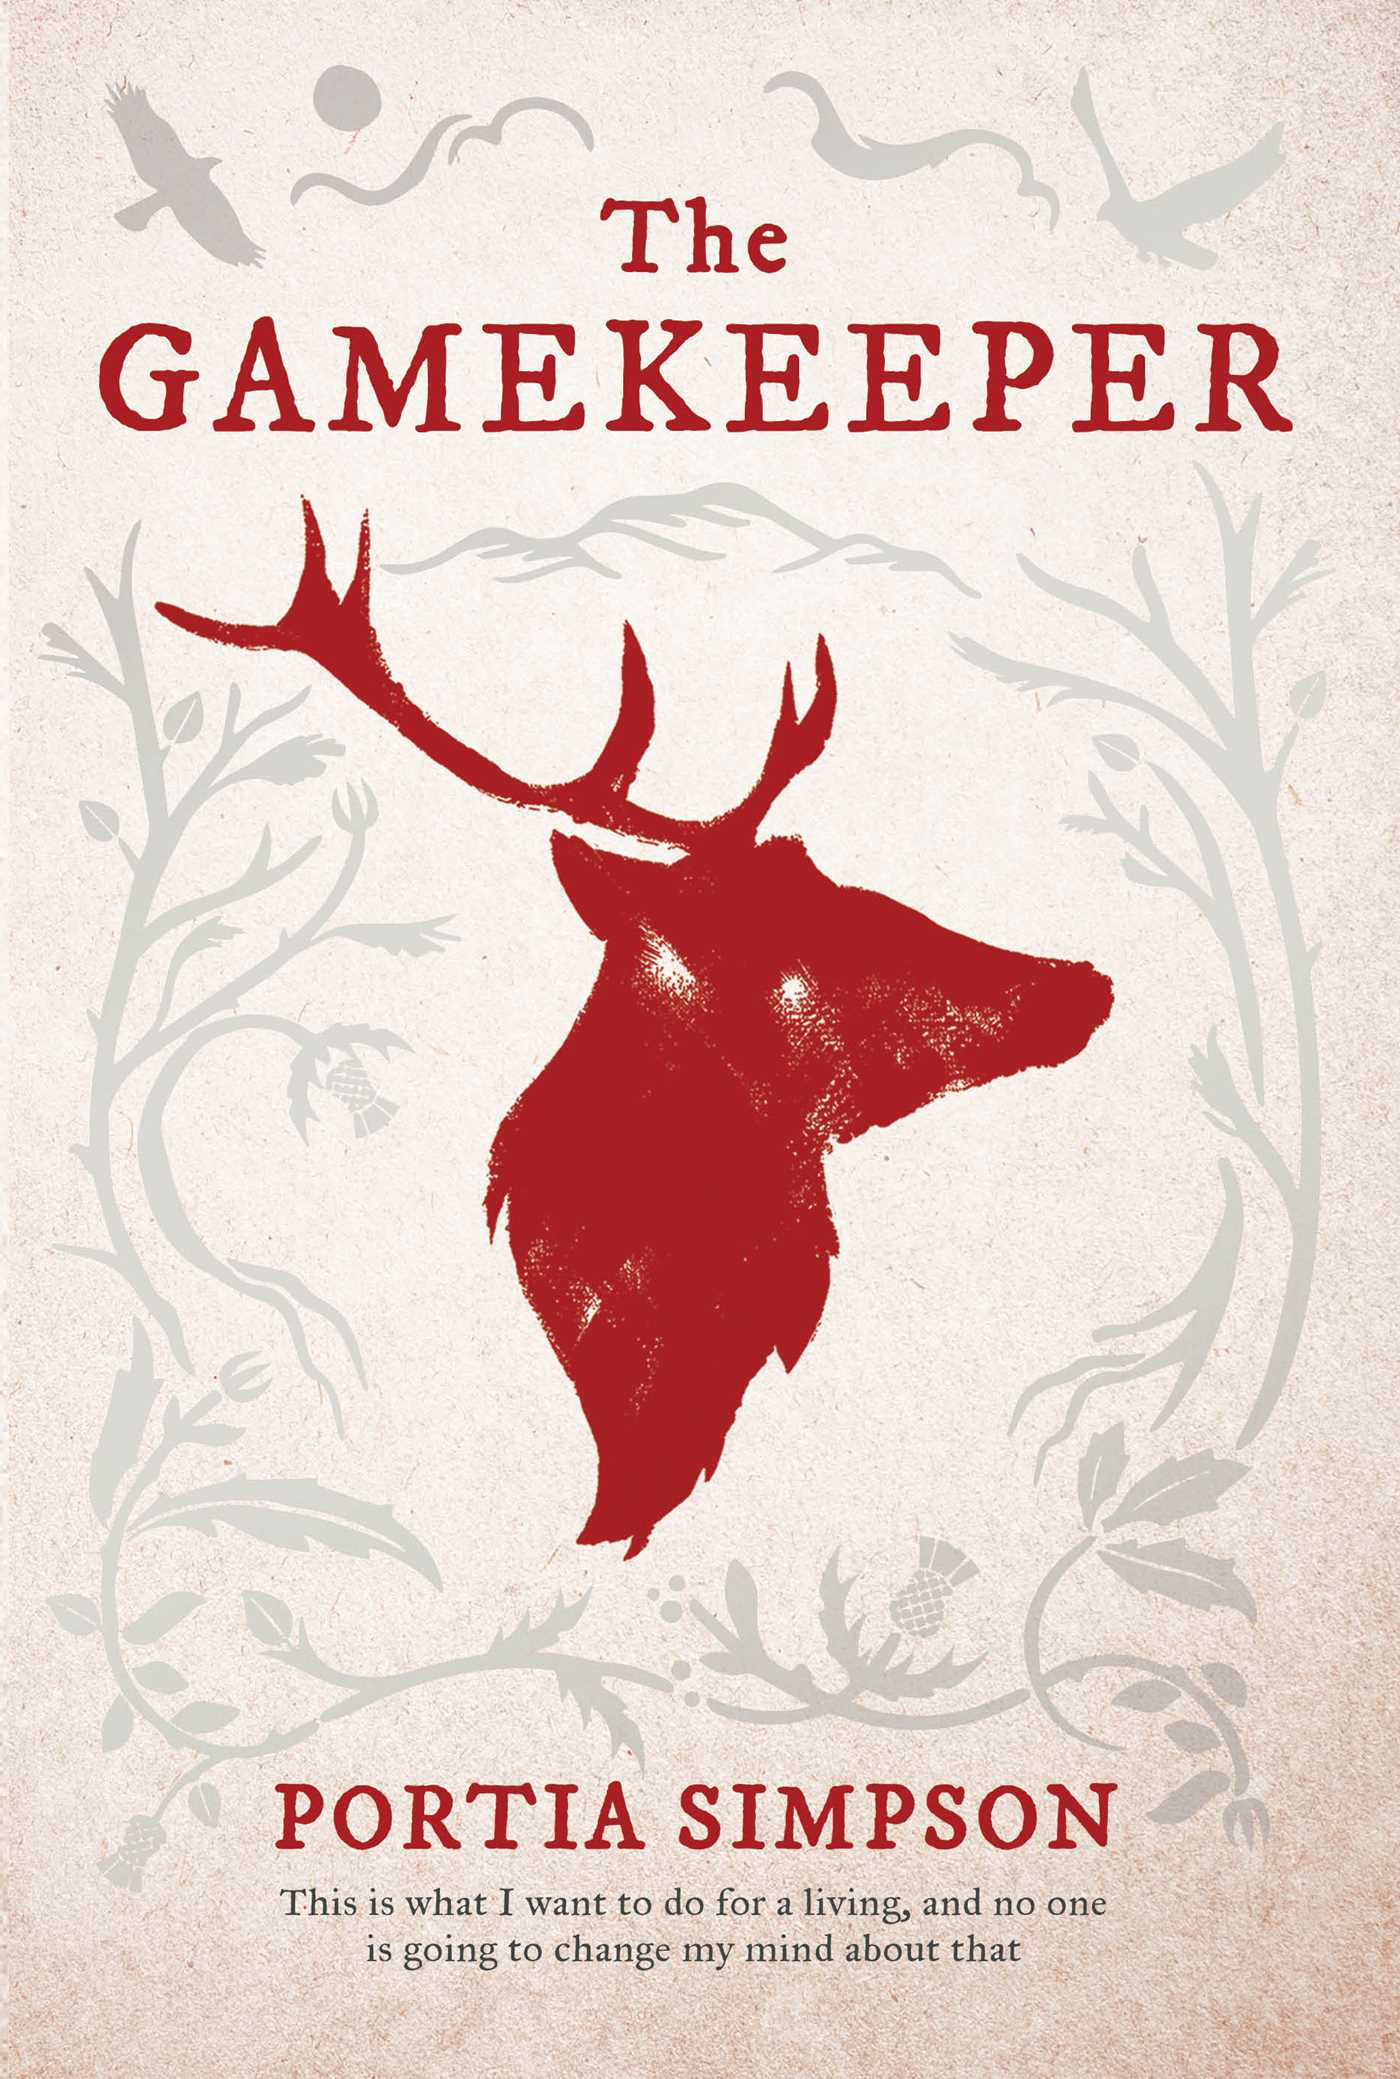 The gamekeeper 9781471159244 hr